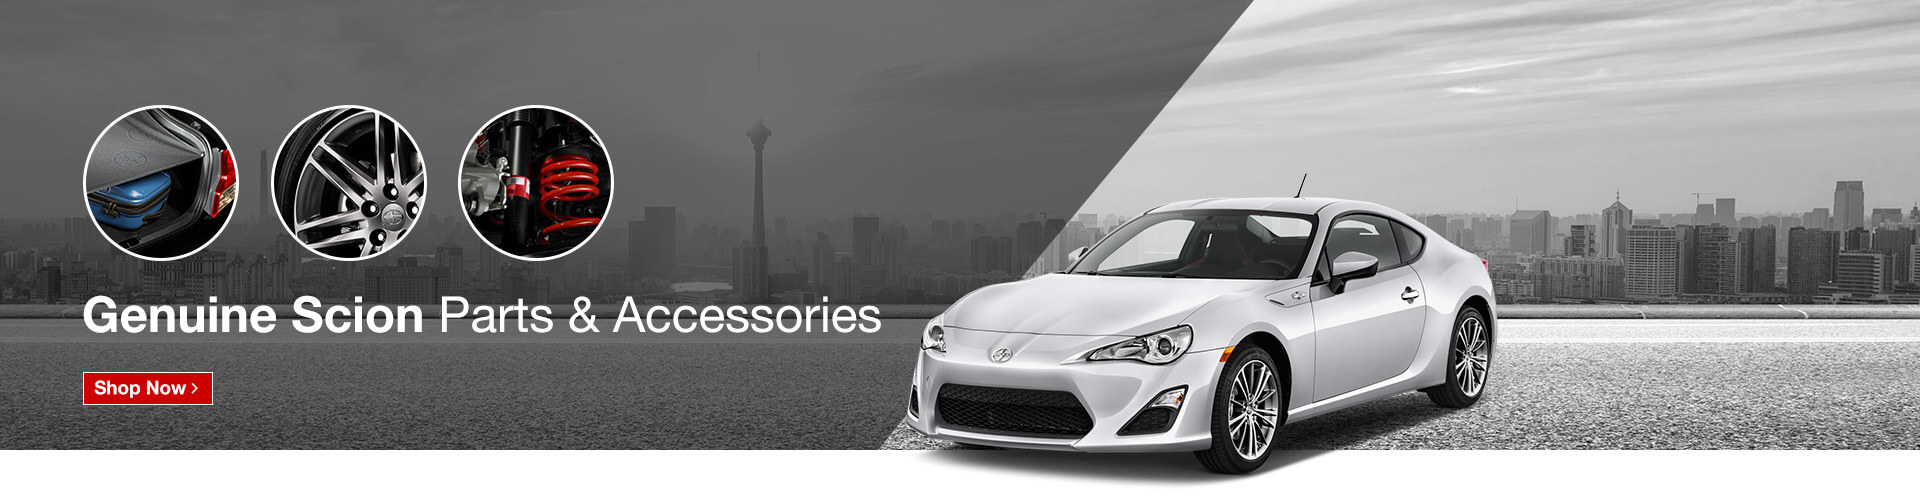 Genuine Scion Parts & Accessories